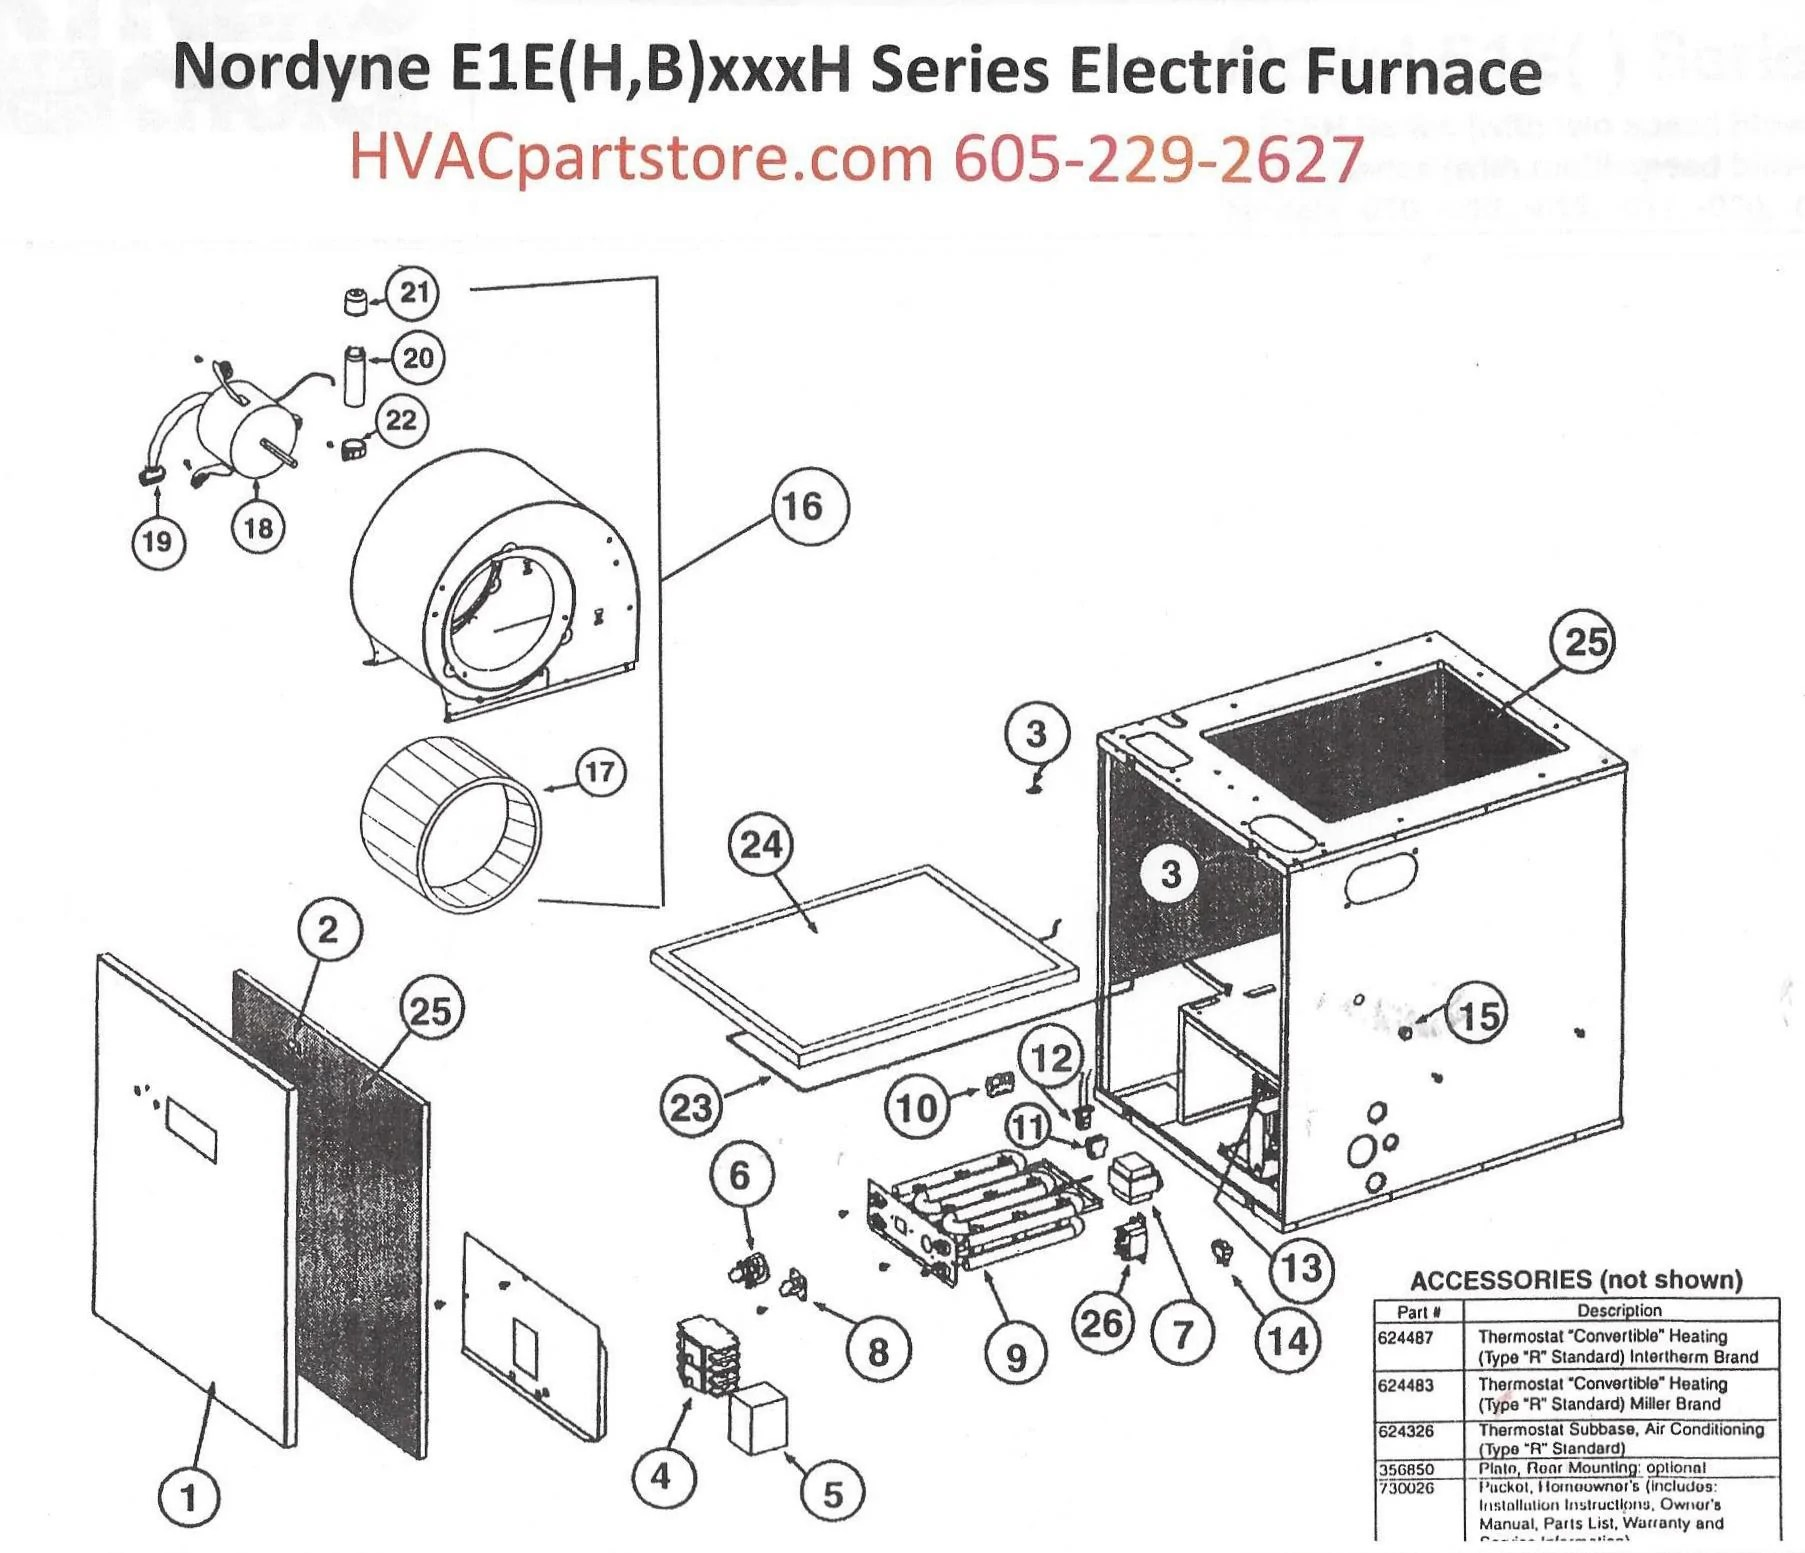 nordyne ac wiring diagram jvc car stereo color e1eh015h electric furnace parts  hvacpartstore